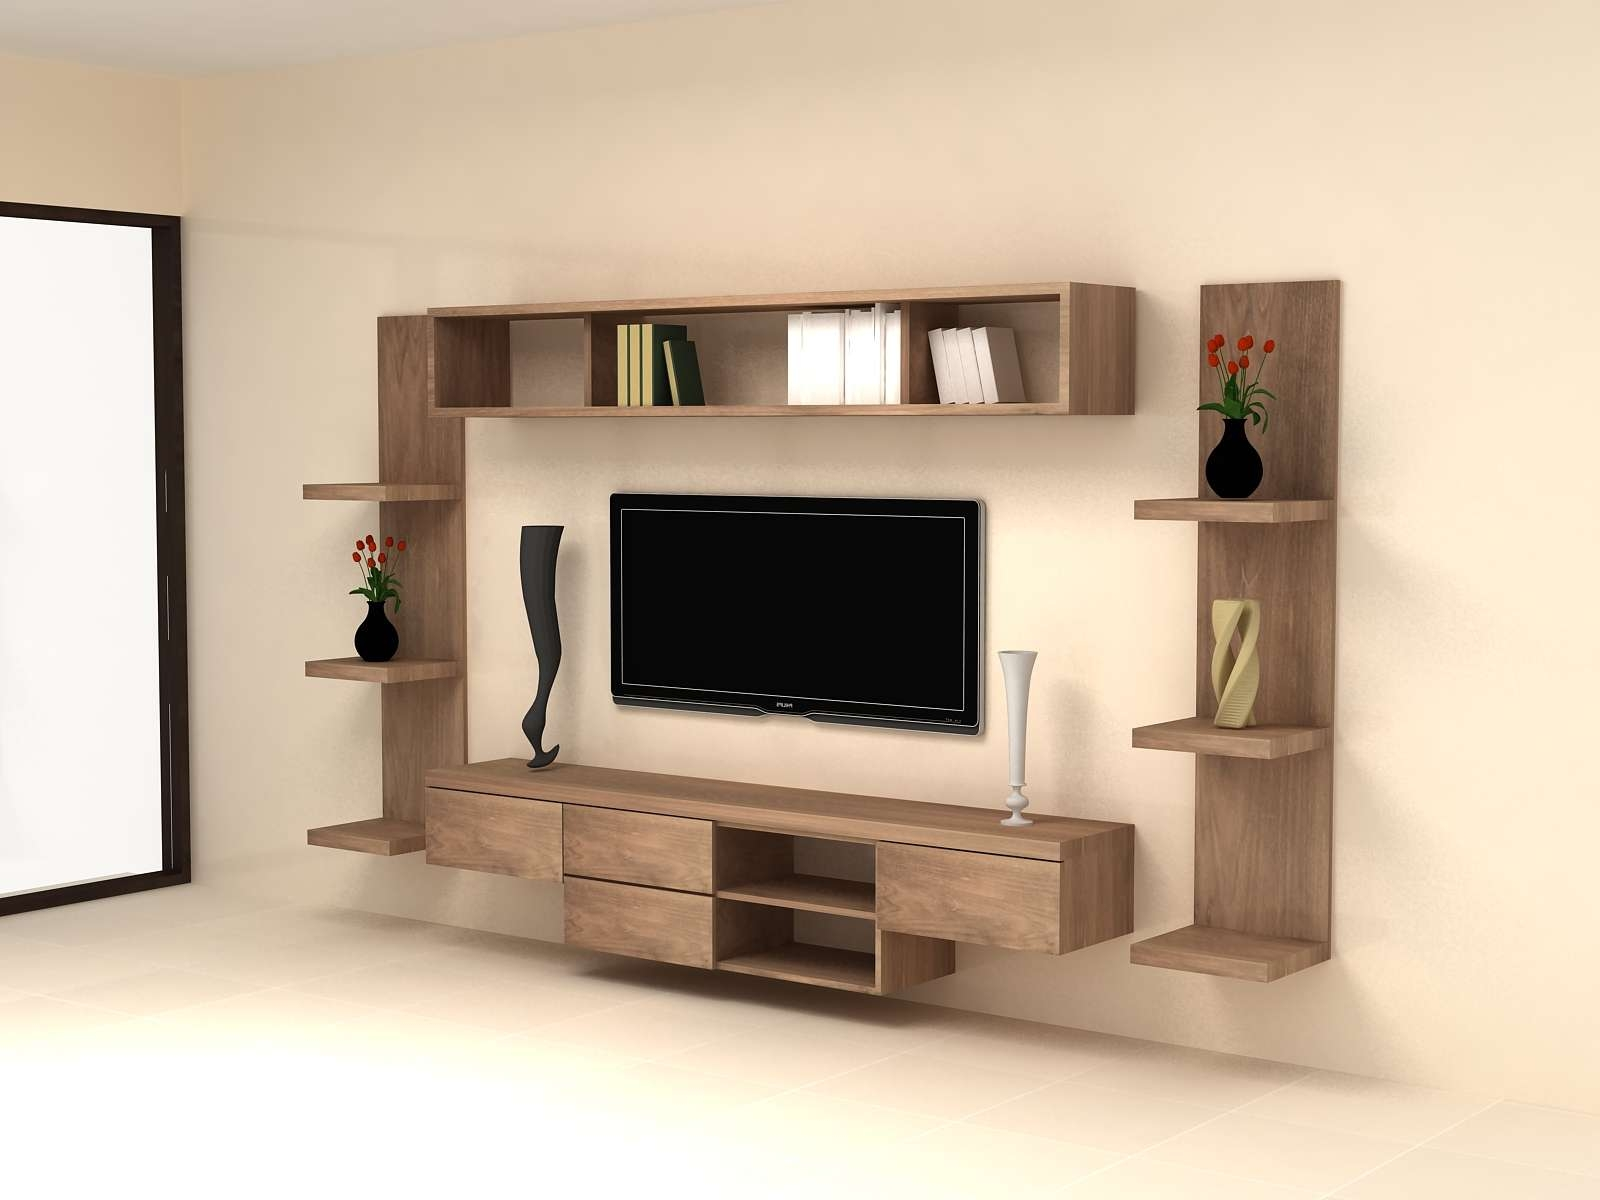 Bedroom : Tv Wall Unit Designs Tv Stand Unit Thin Tv Stand Wall For Tv Cabinets Contemporary Design (View 13 of 20)